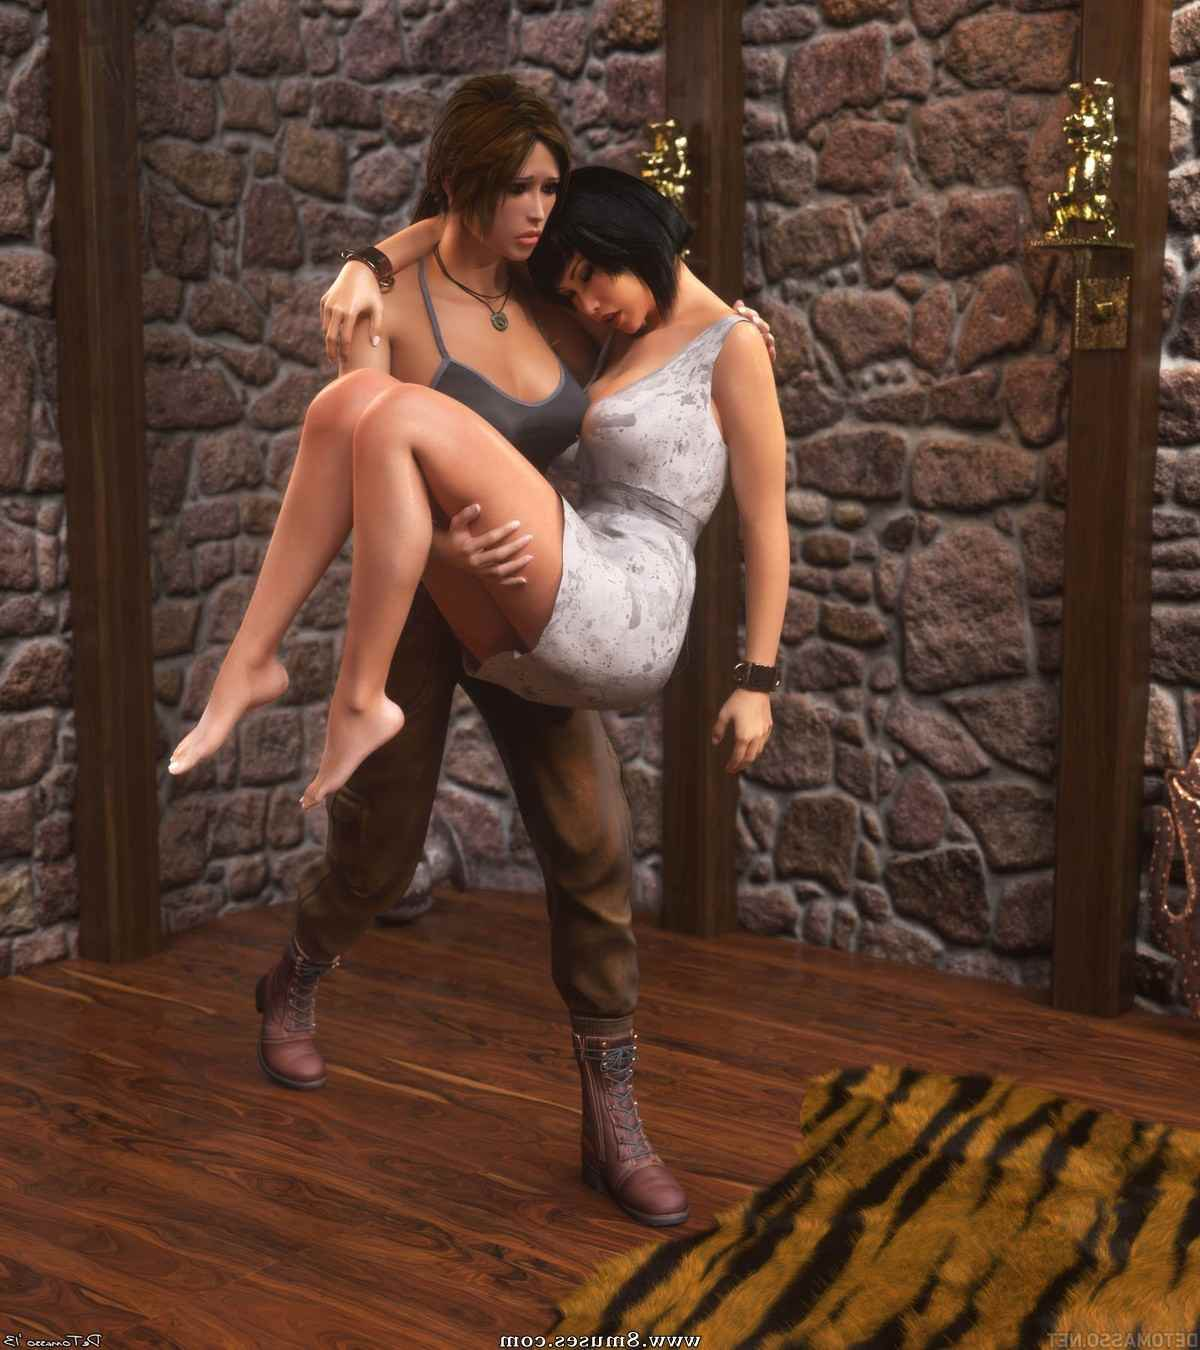 DeTomasso-Comics/Tomb-Raider-A-Friend-In-Need Tomb_Raider_-_A_Friend_In_Need__8muses_-_Sex_and_Porn_Comics_2.jpg